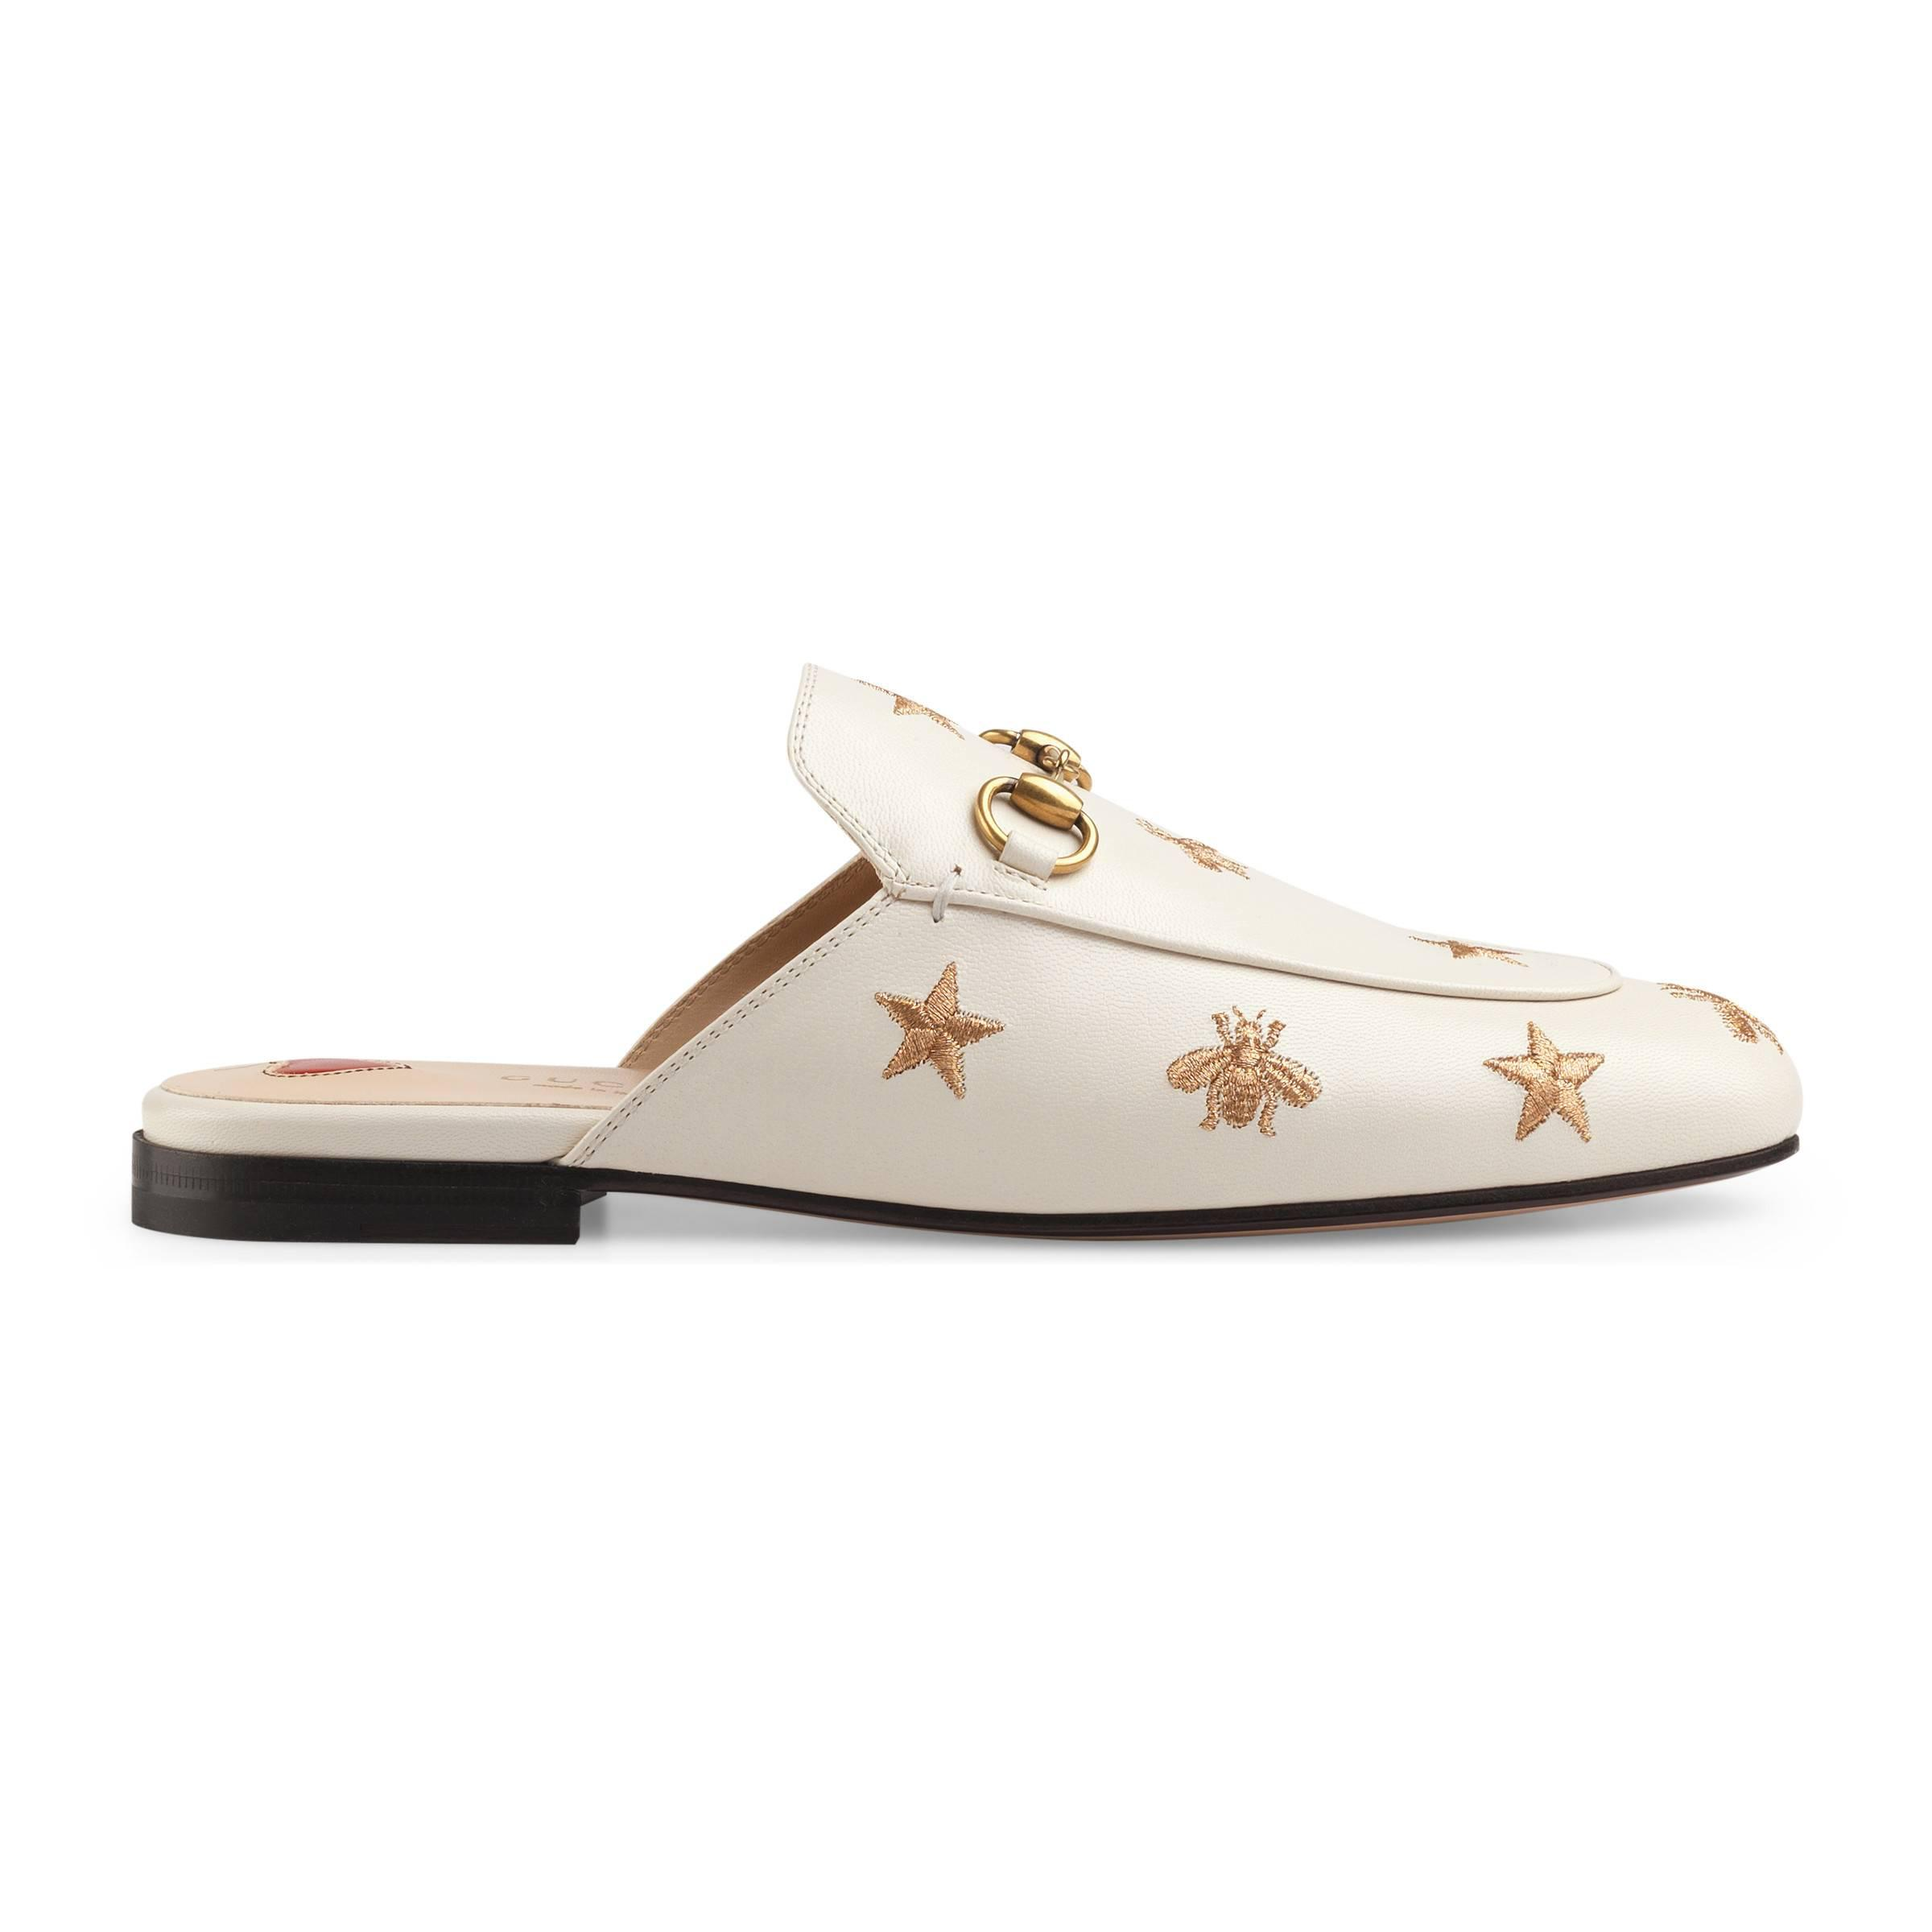 711a3335839 Gucci Princetown Embroidered Leather Slipper in White - Lyst